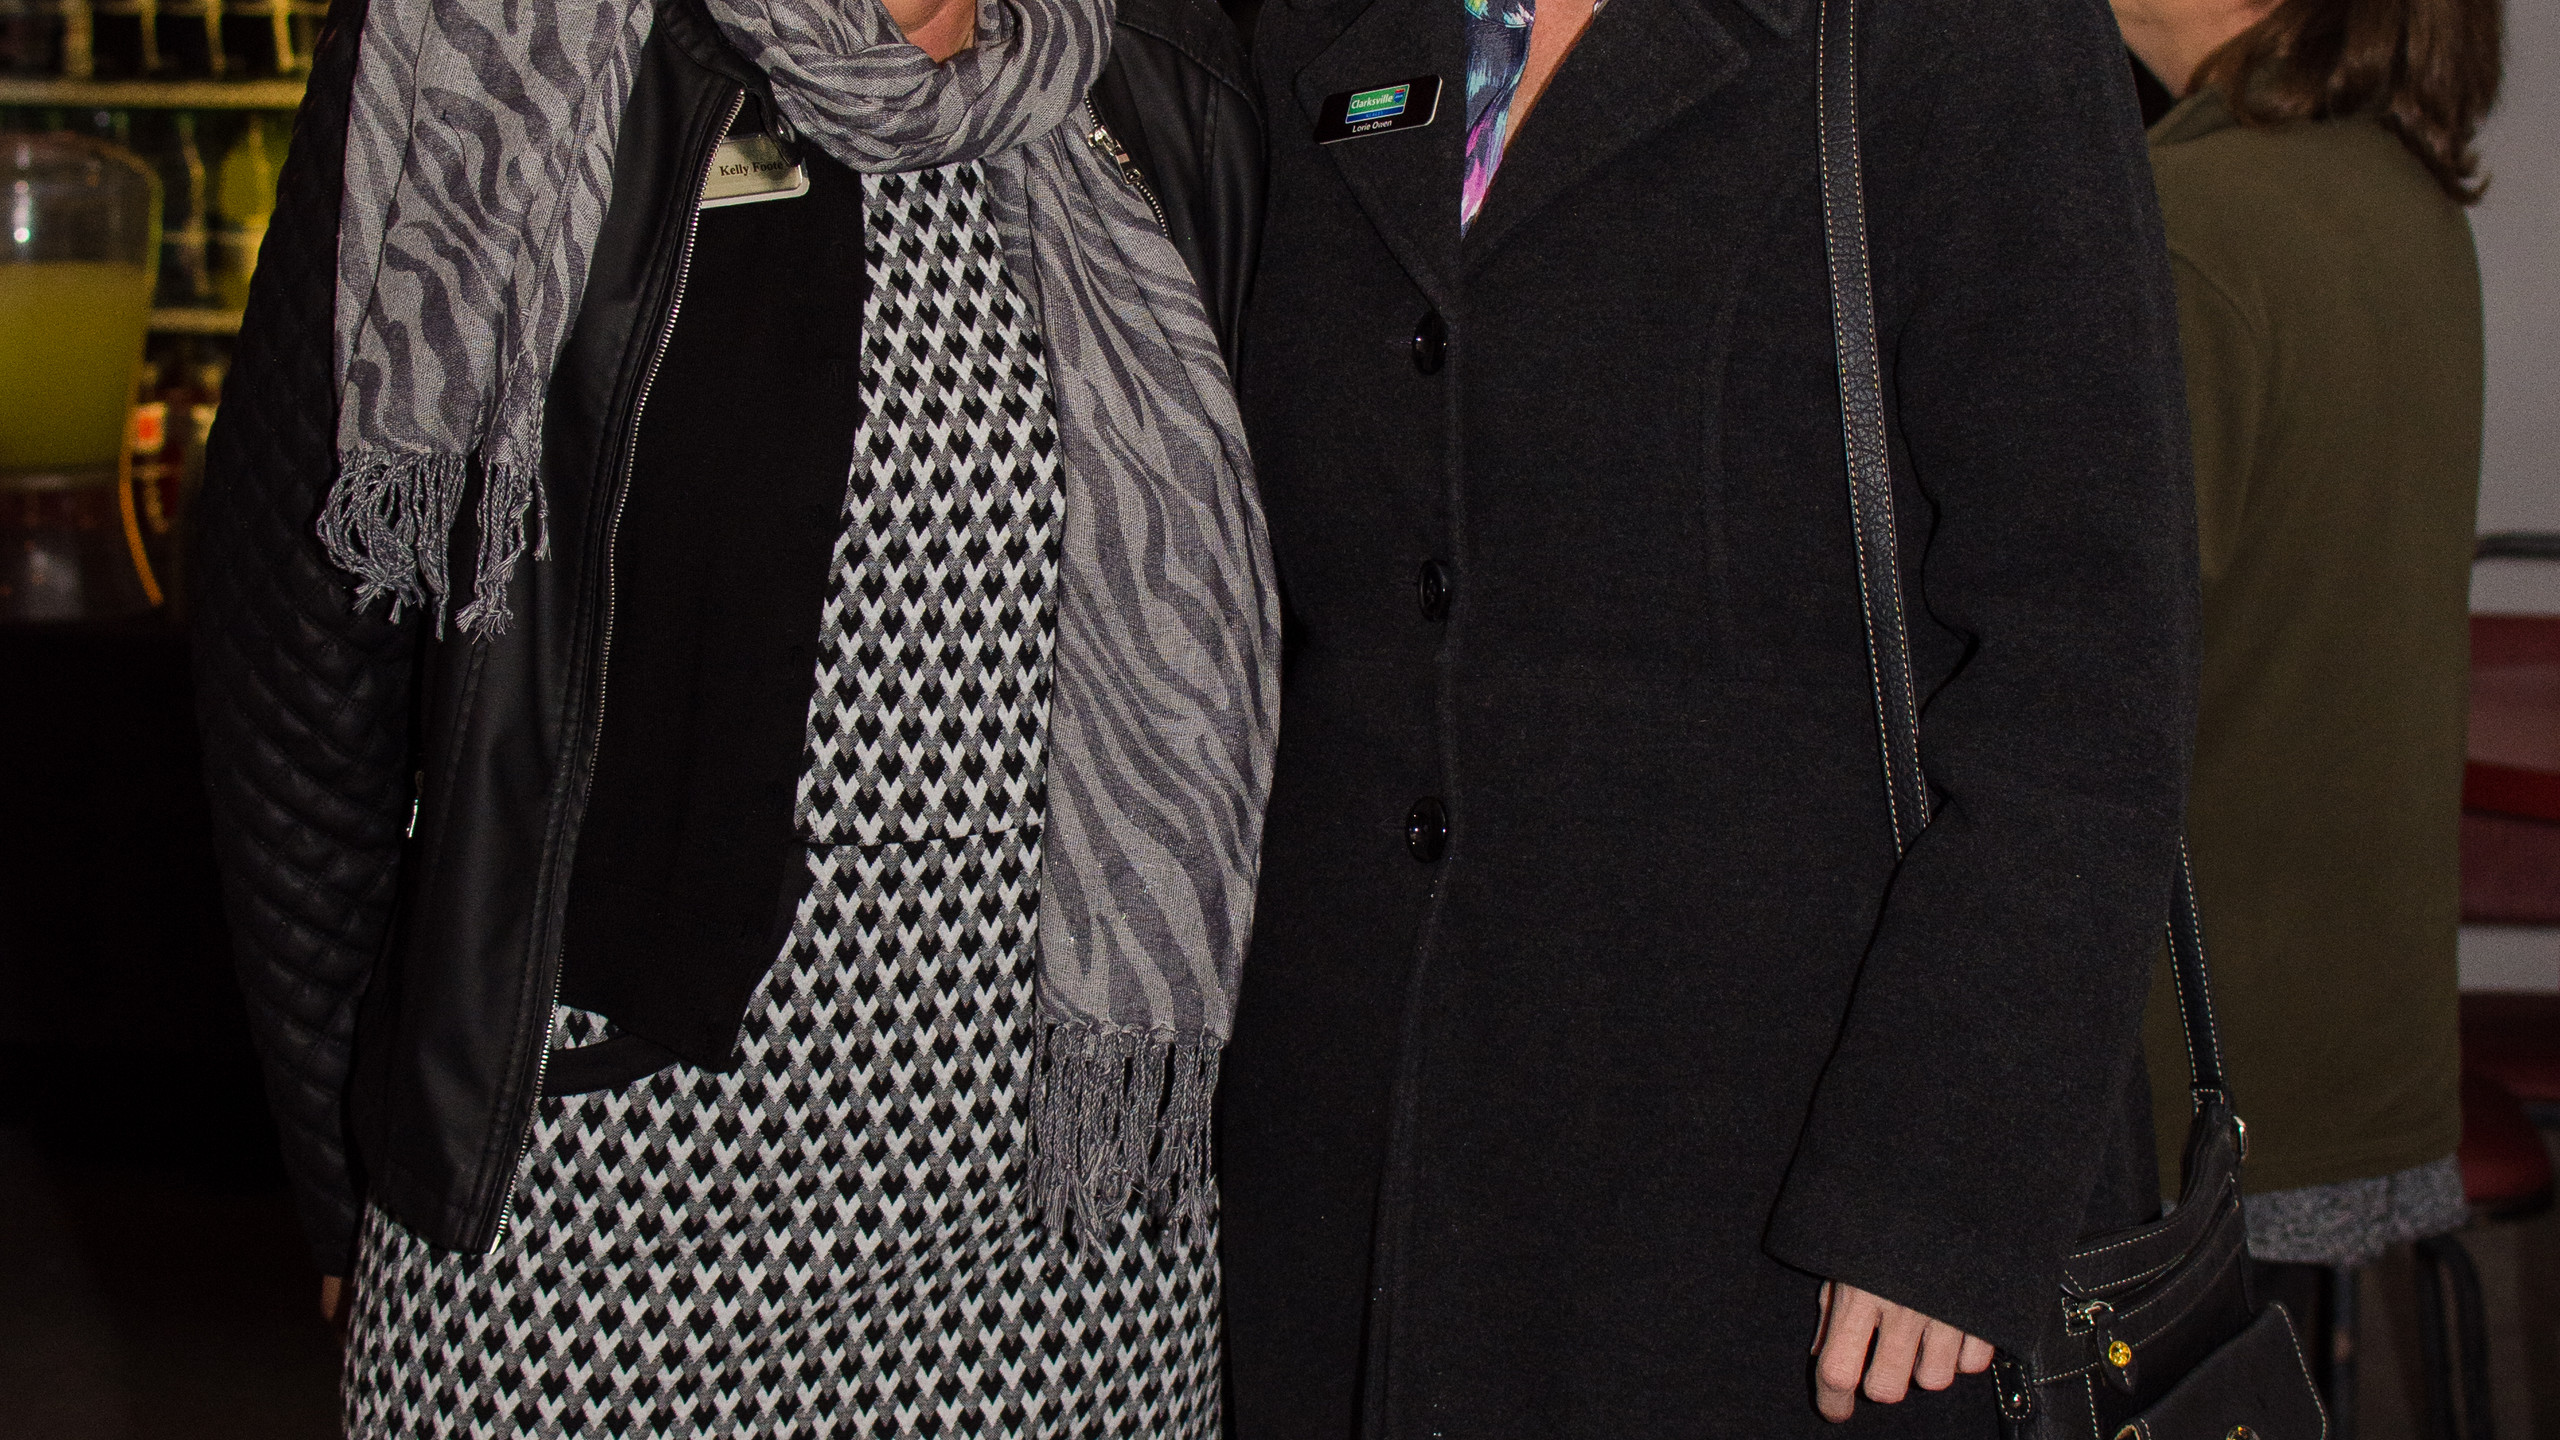 Kelly Foote and Lorie Owen